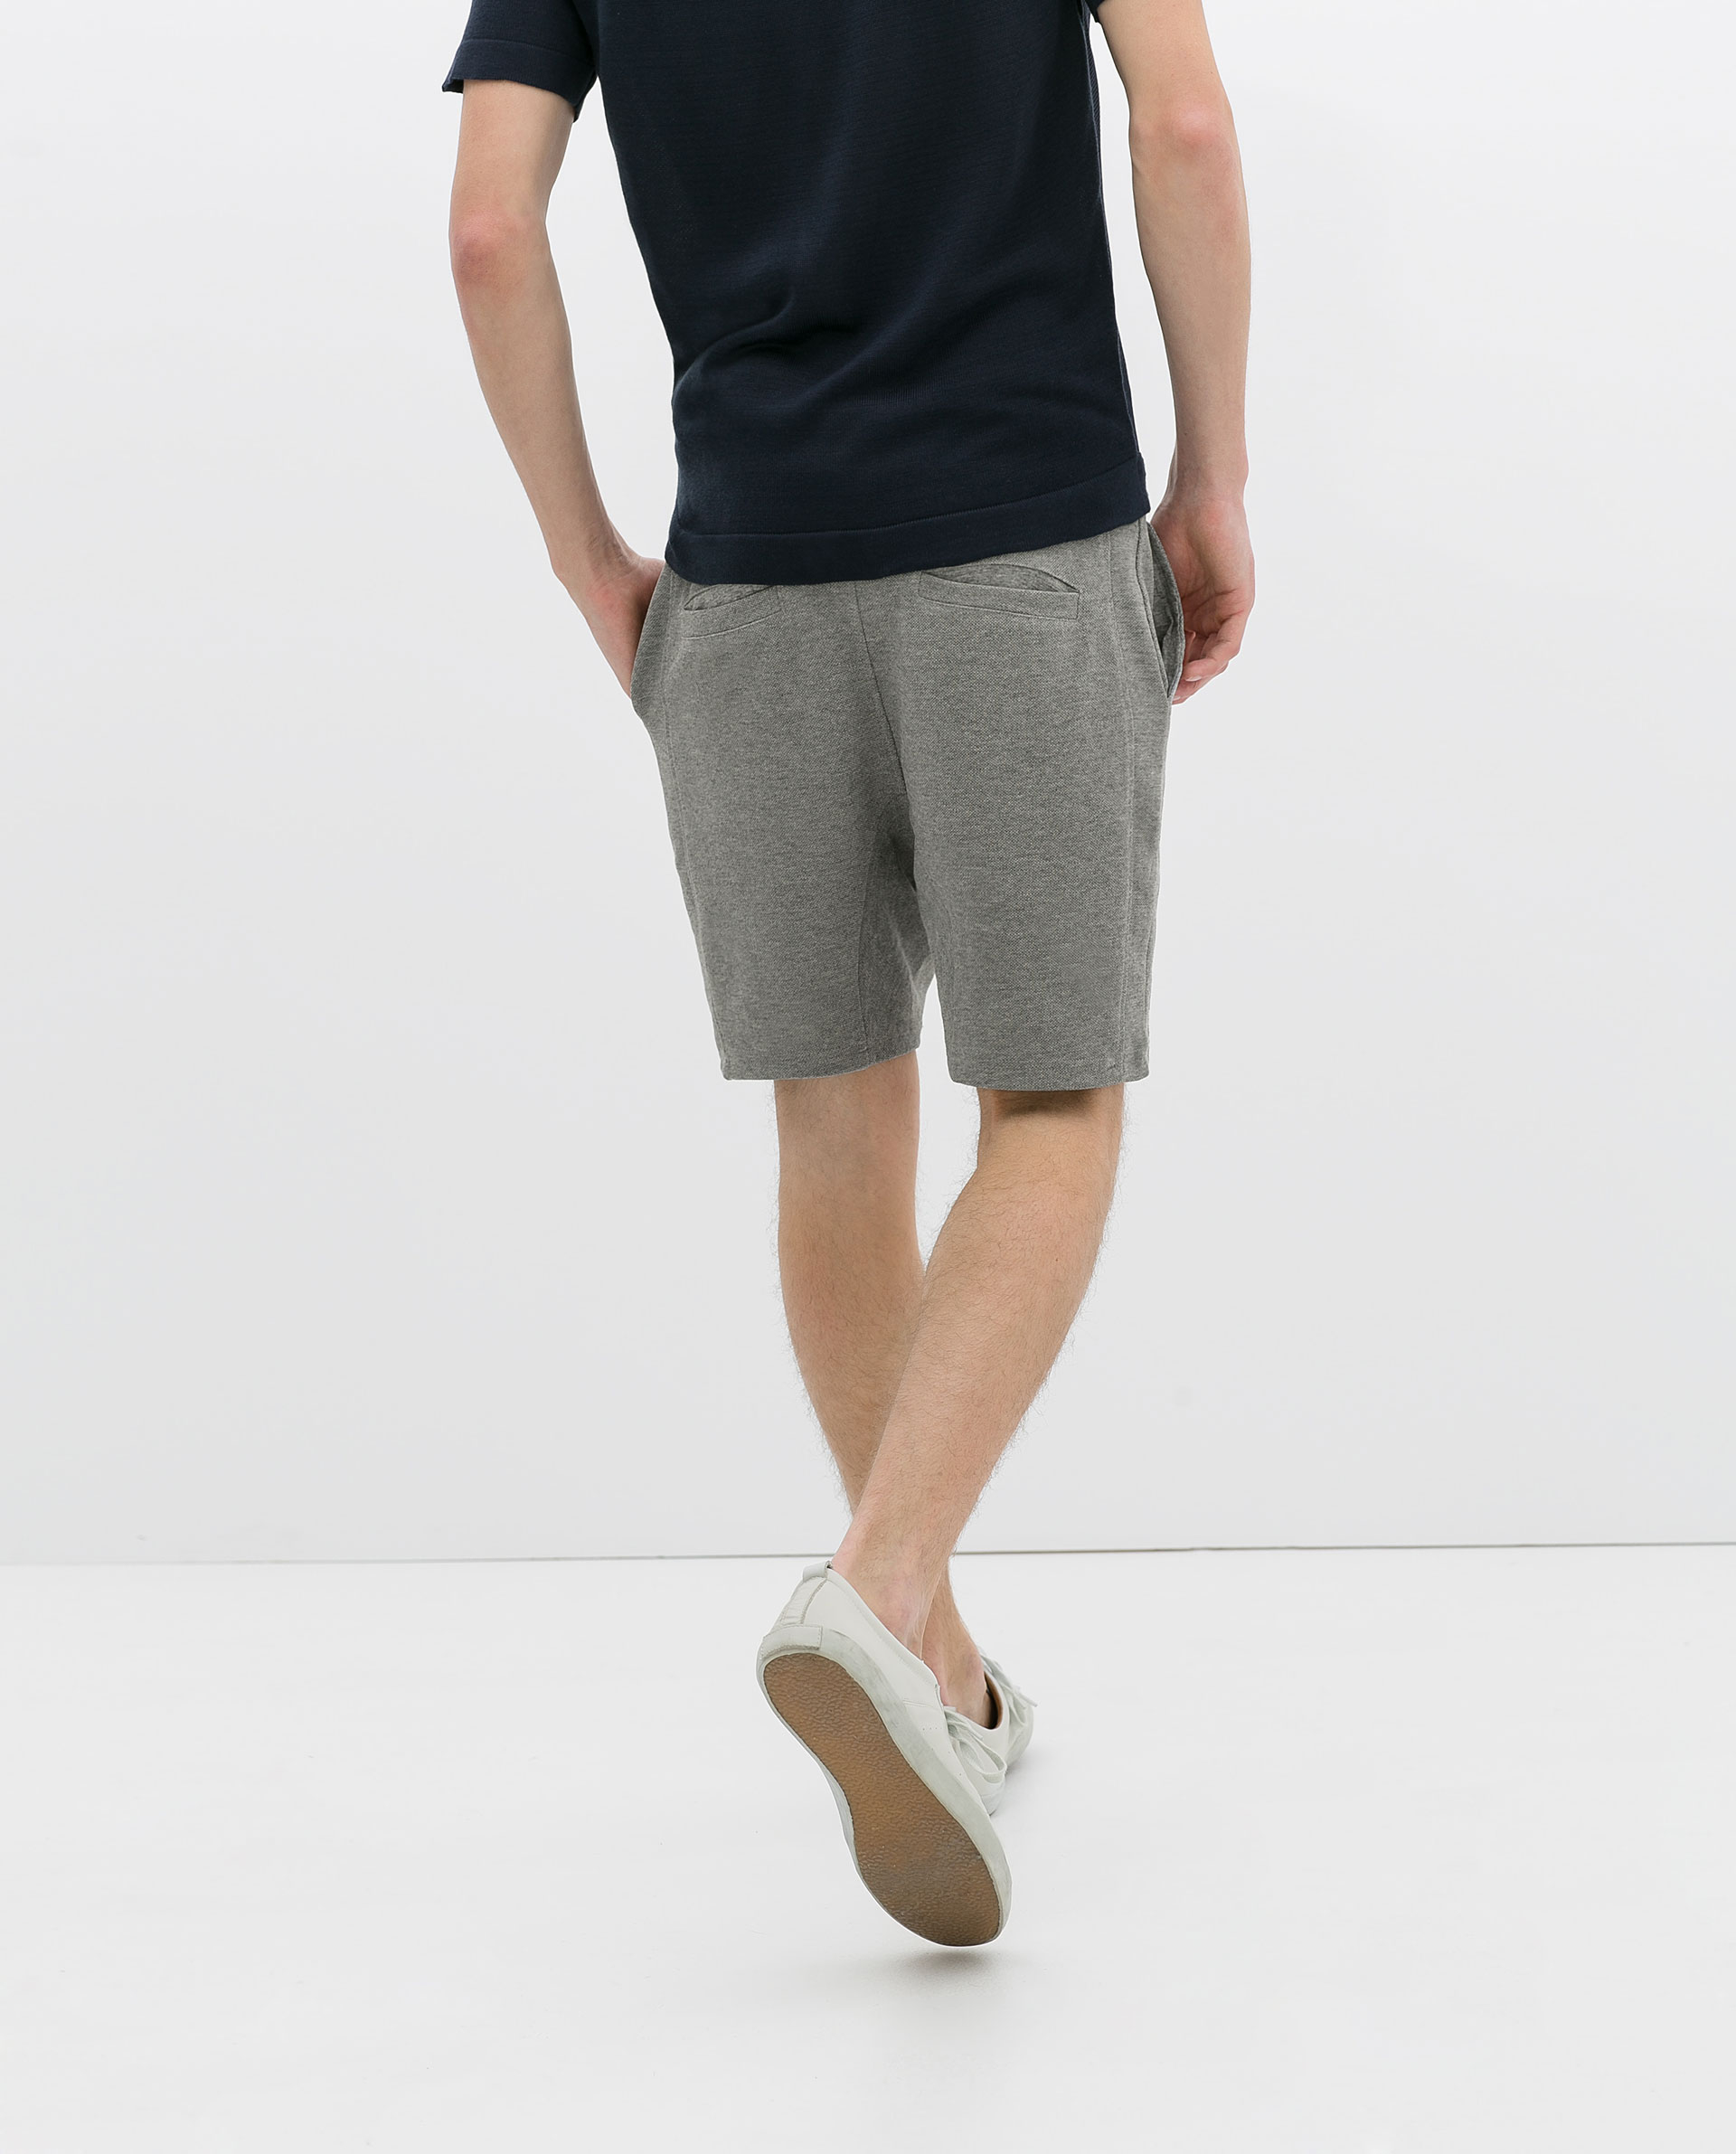 Buy second-hand ZARA clothing for Men on Vestiaire Collective. Buy, sell, empty your wardrobe on our website.